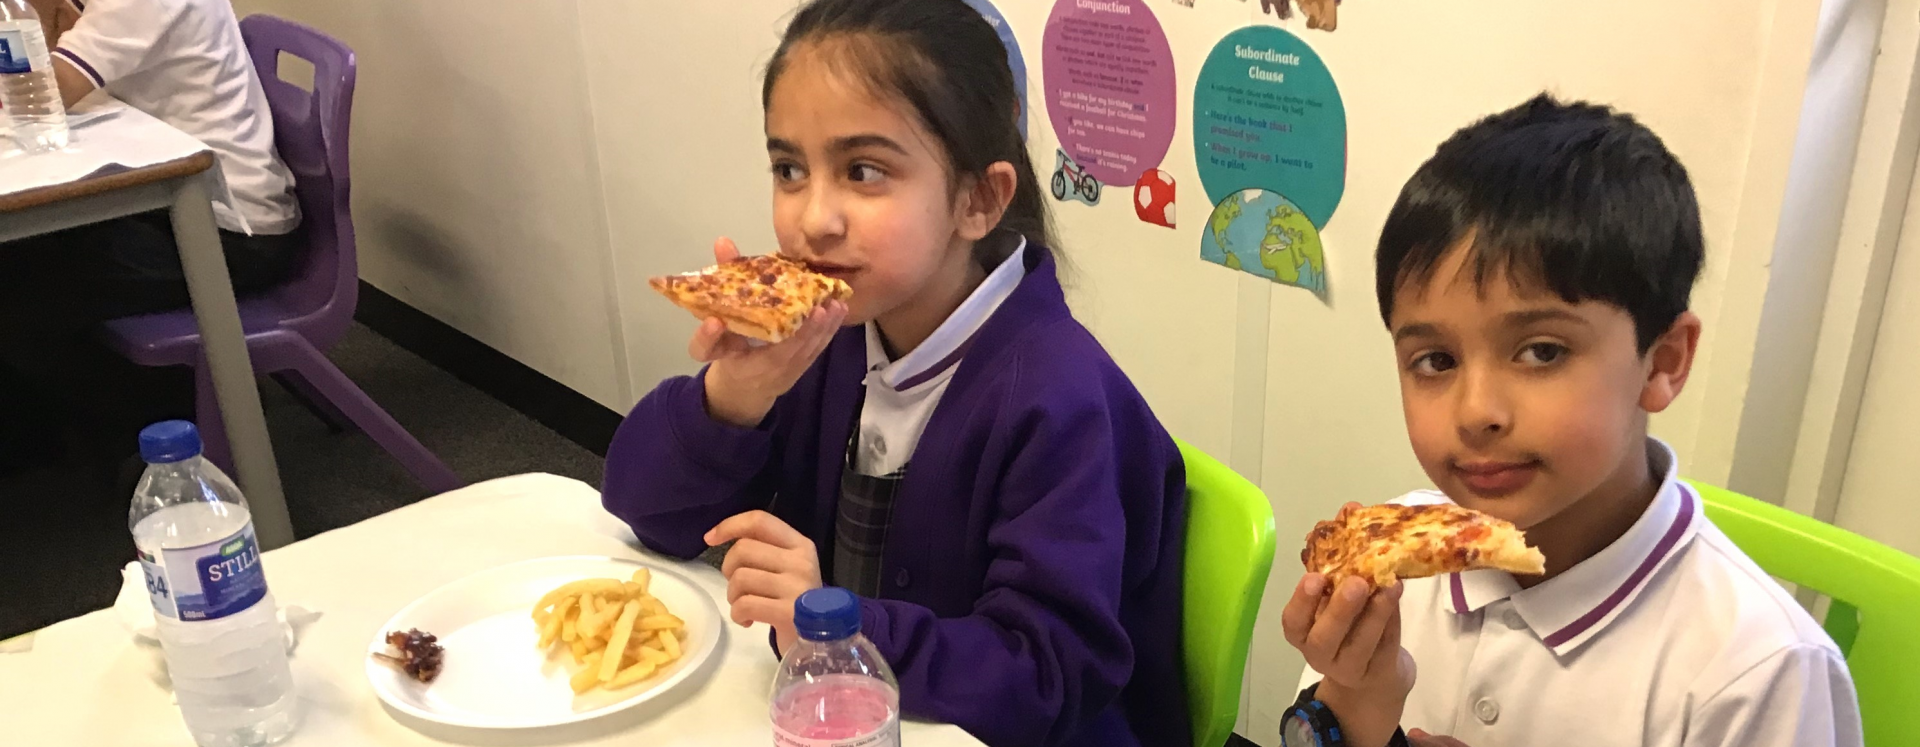 Pupils learn about breaking their fast during 'Mini Iftar'